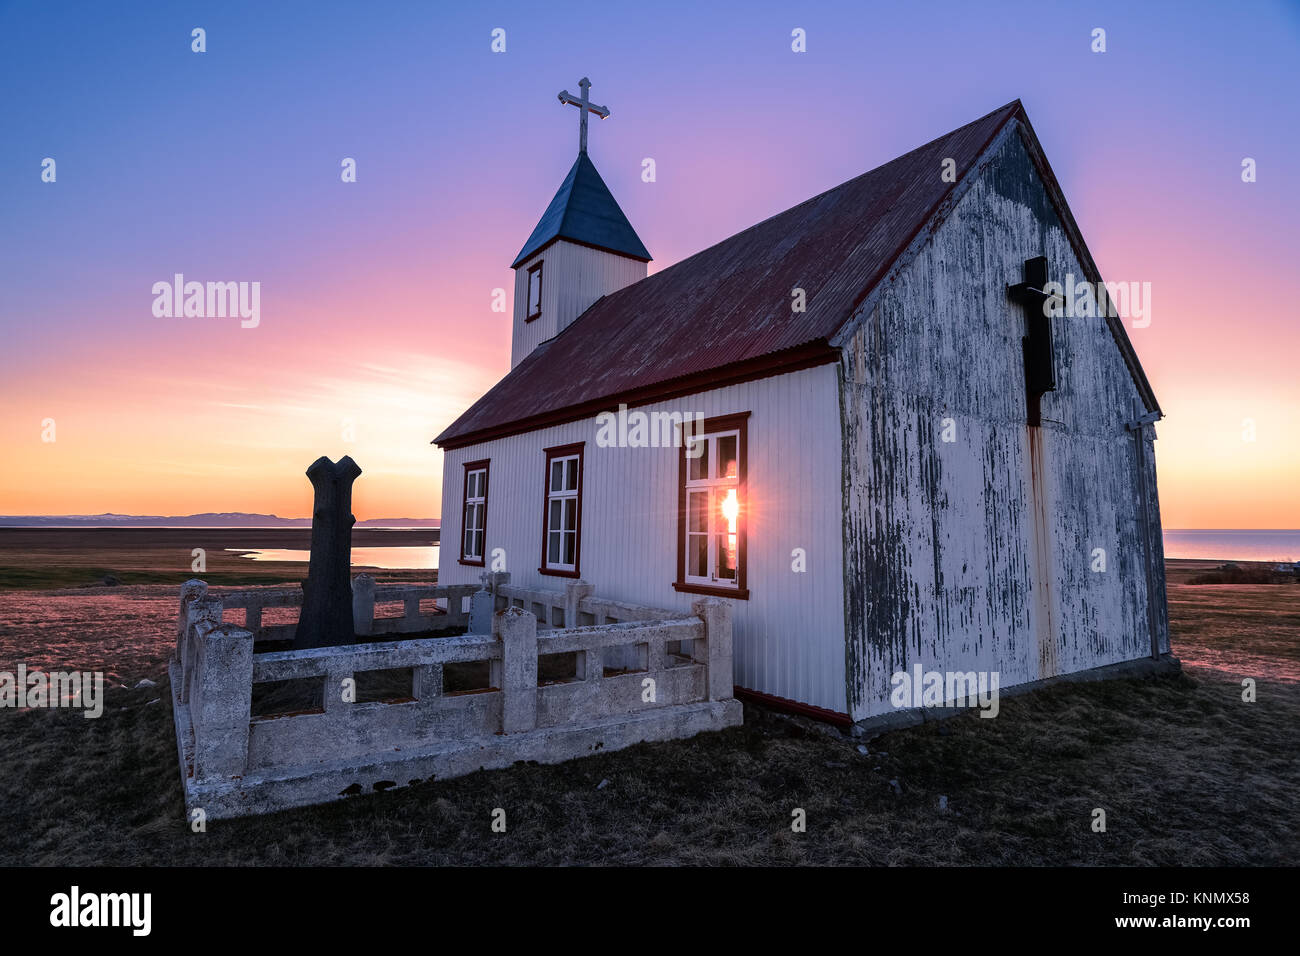 Sun shines through church at sunset in Iceland - Stock Image